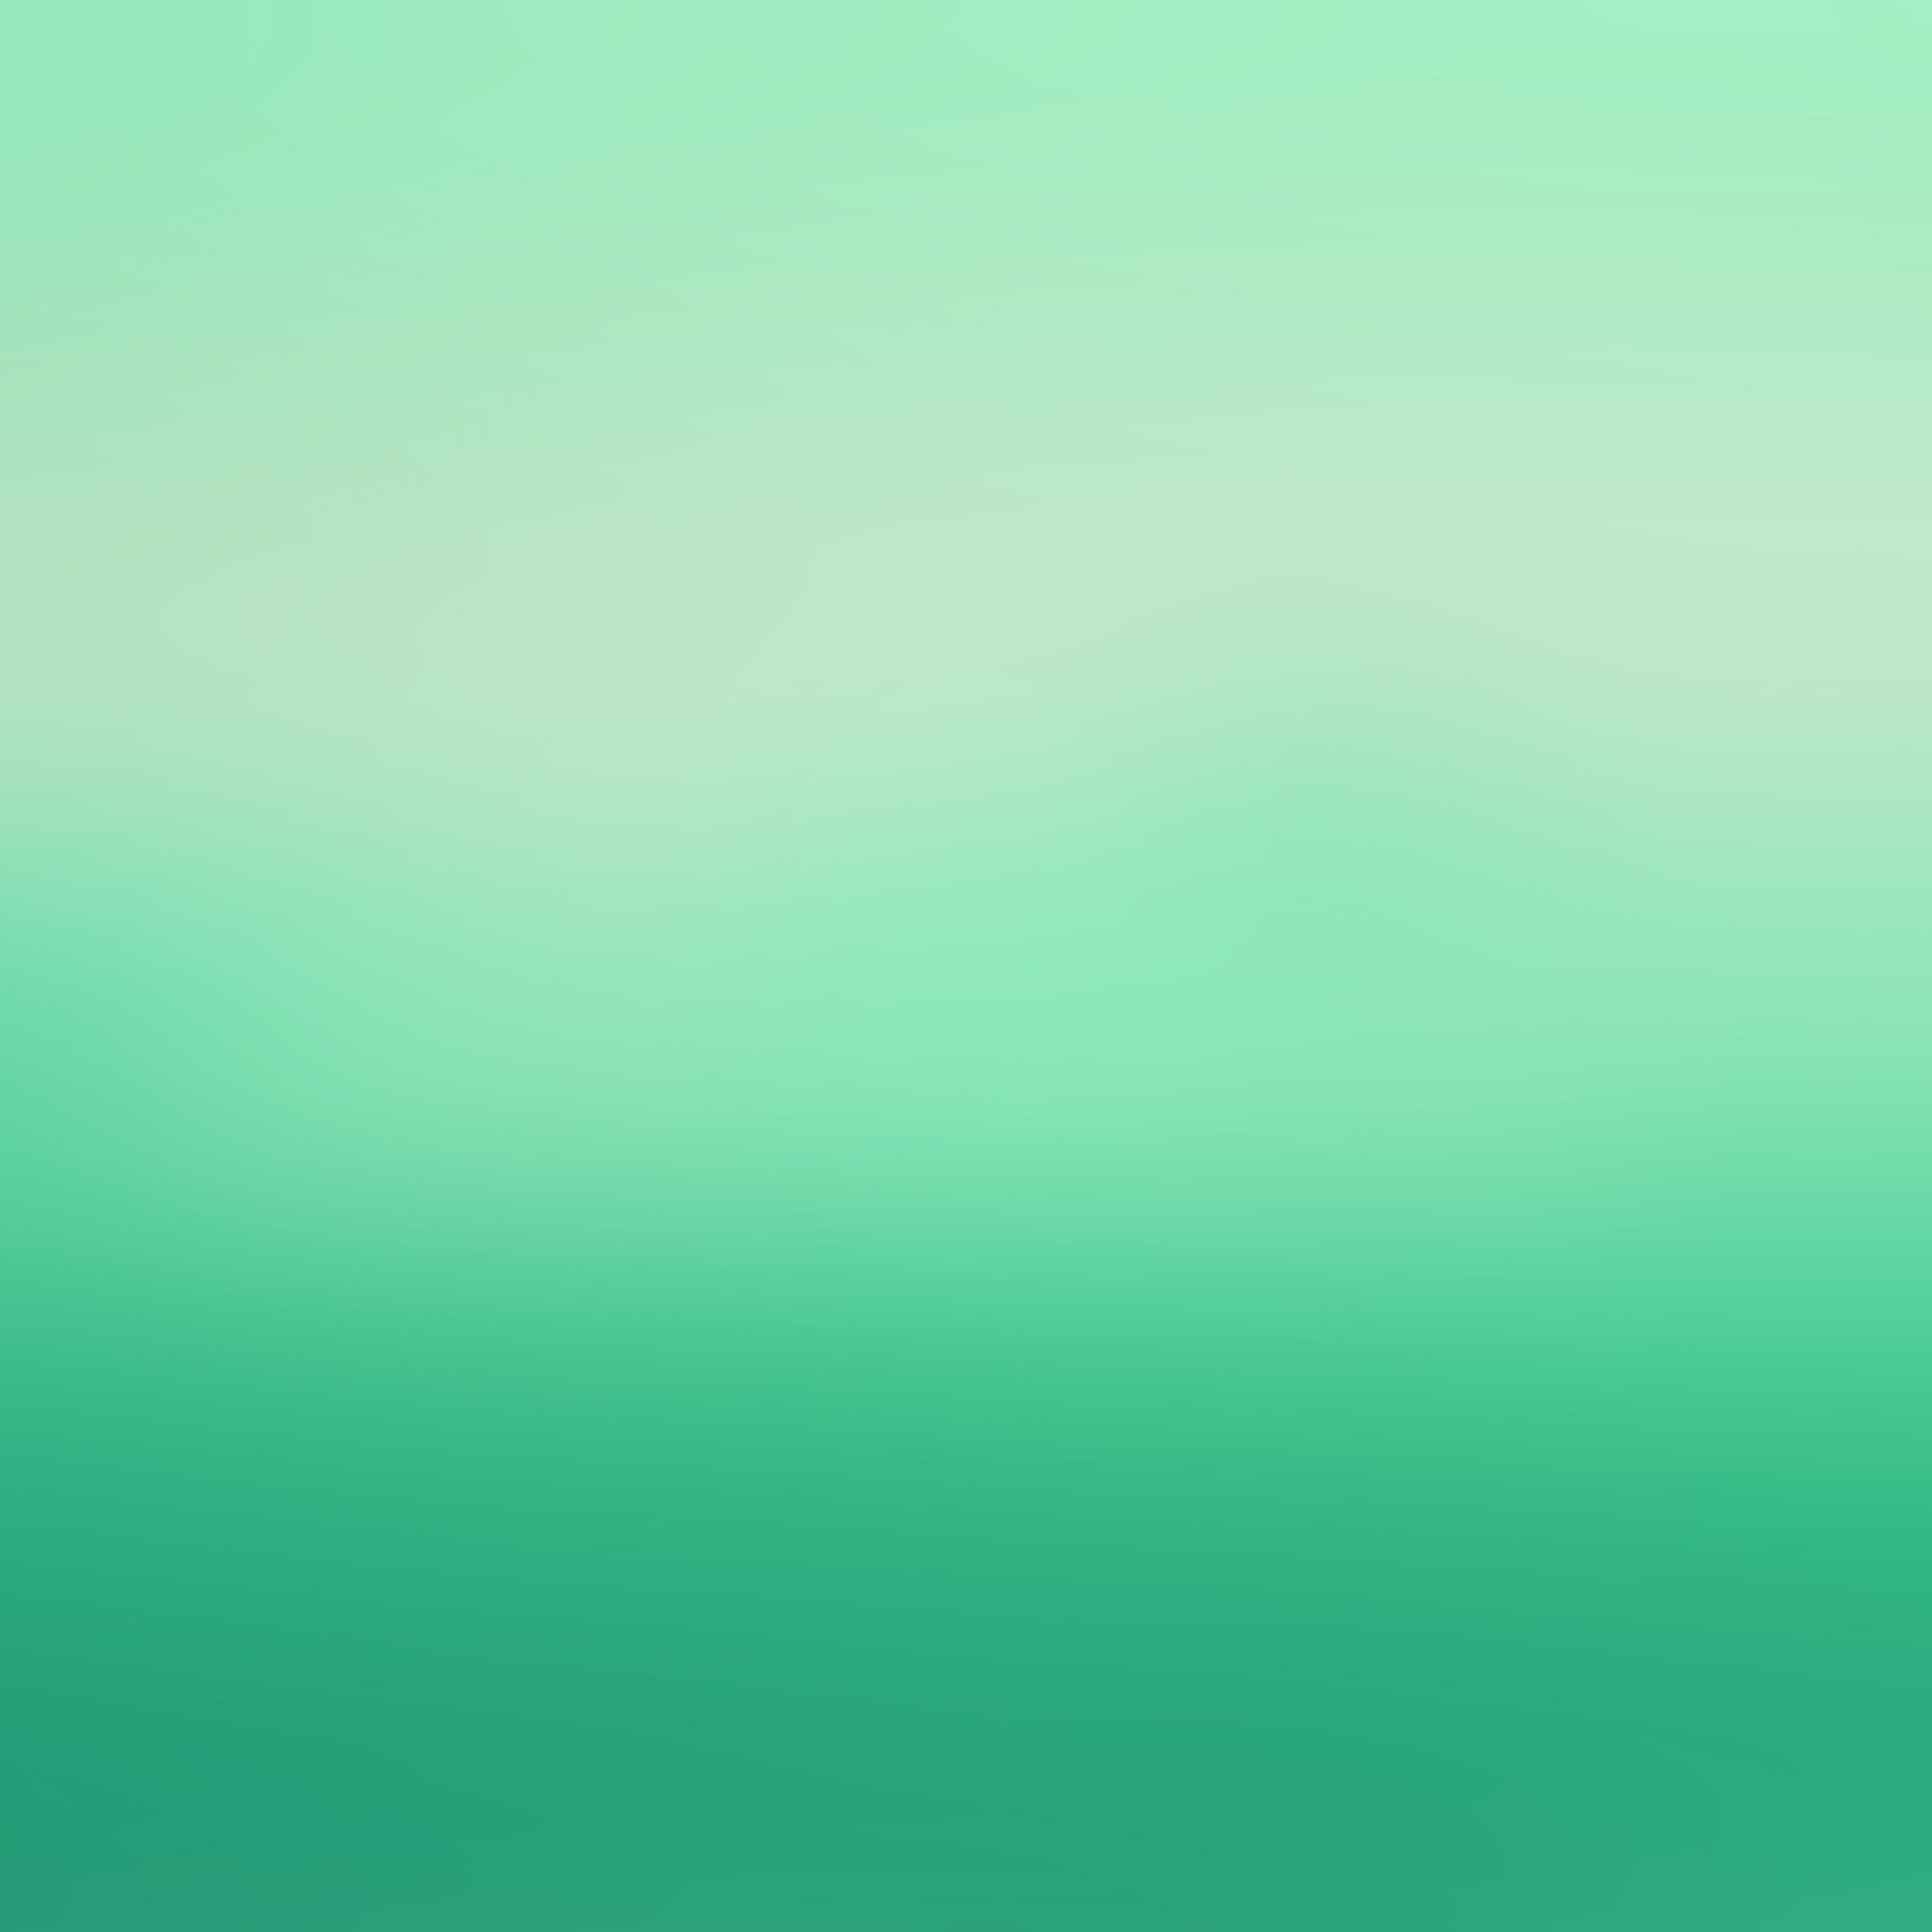 Papers Co Android Wallpaper Sl07 Green Asparagus Blur Gradation